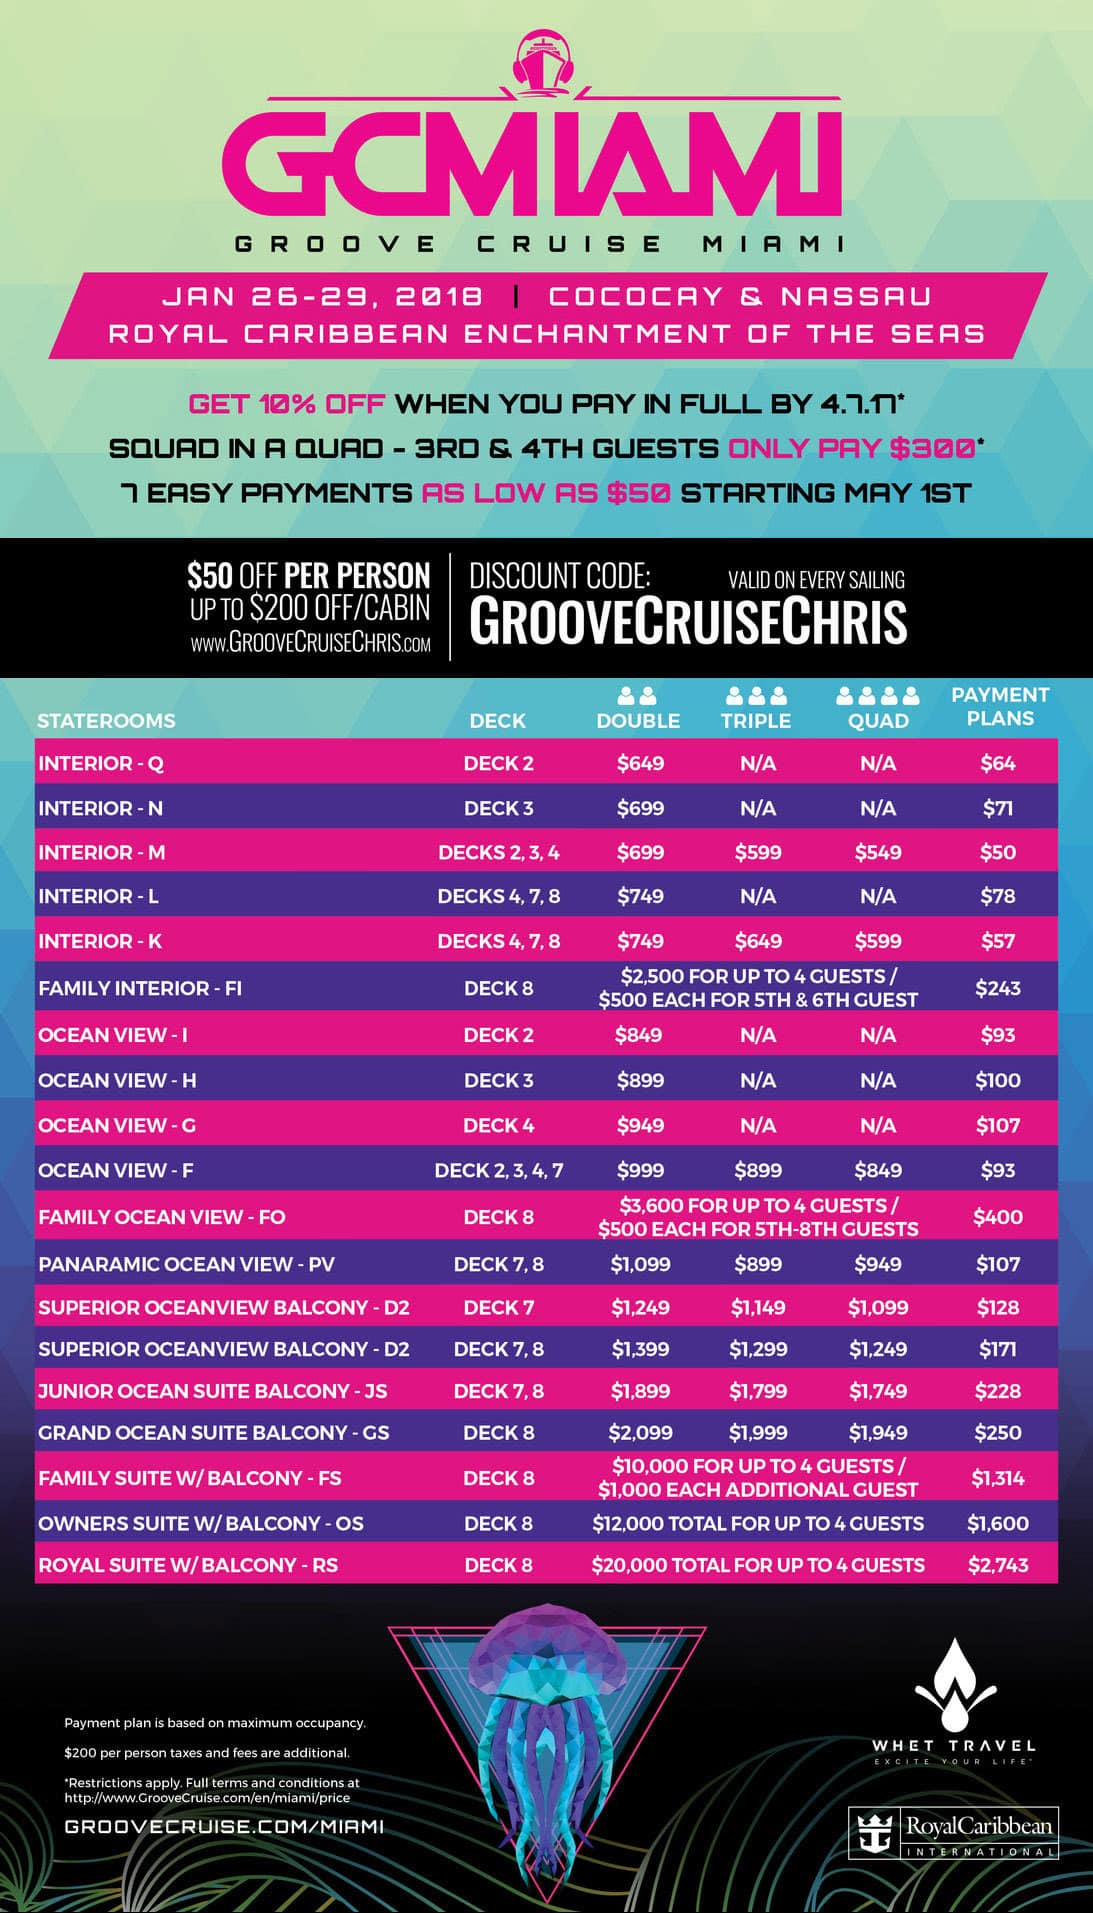 Prices For Groove Cruise Miami Starting At Person - Cruise deals from miami